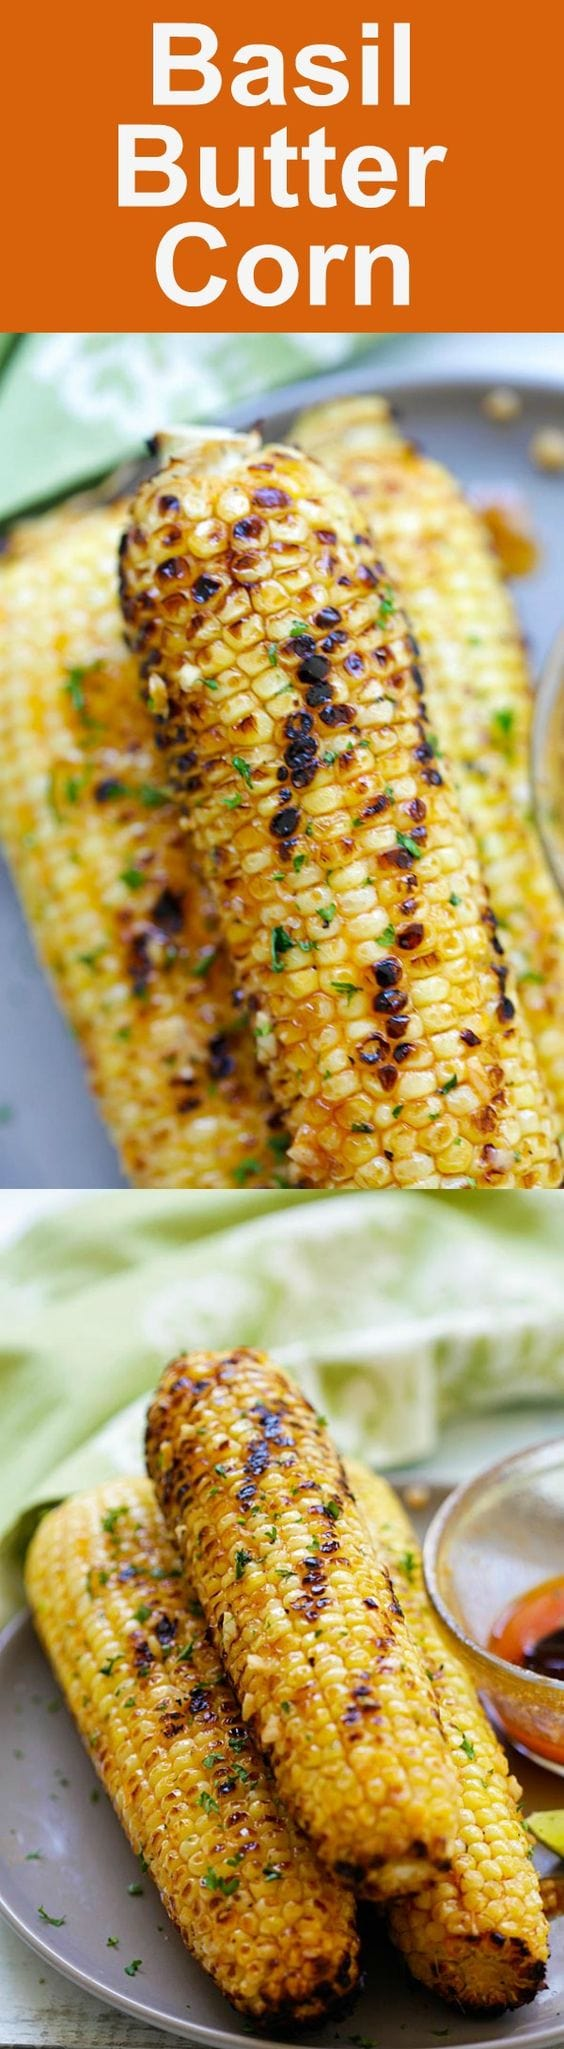 Basil Butter Corn - sweet and juicy corn slathered with homemade basil butter and roasted in the oven. Corns have never tasted SO good | rasamalaysia.com